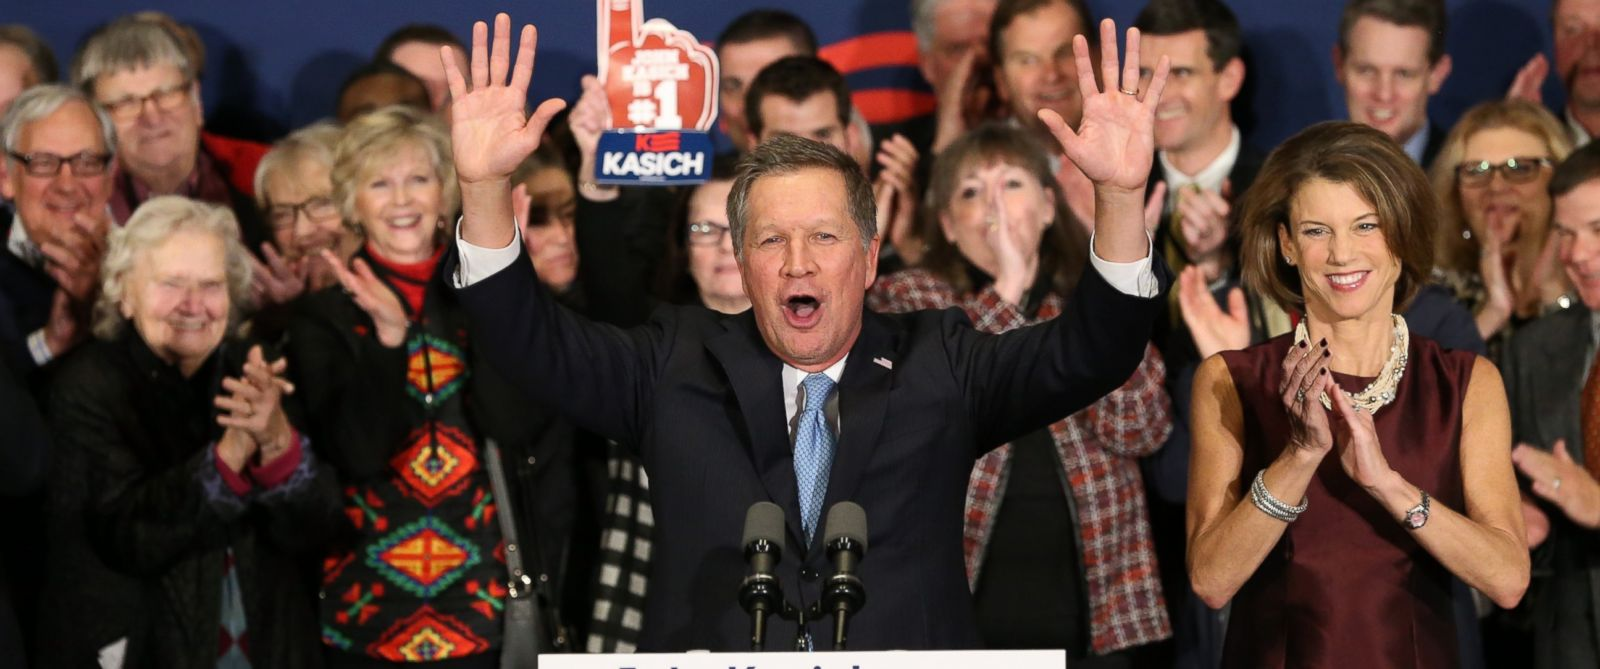 PHOTO:John Kasich speaks at a campaign gathering with supporters upon placing second place in the New Hampshire republican primary, Feb. 9, 2016, in Concord, N.H.